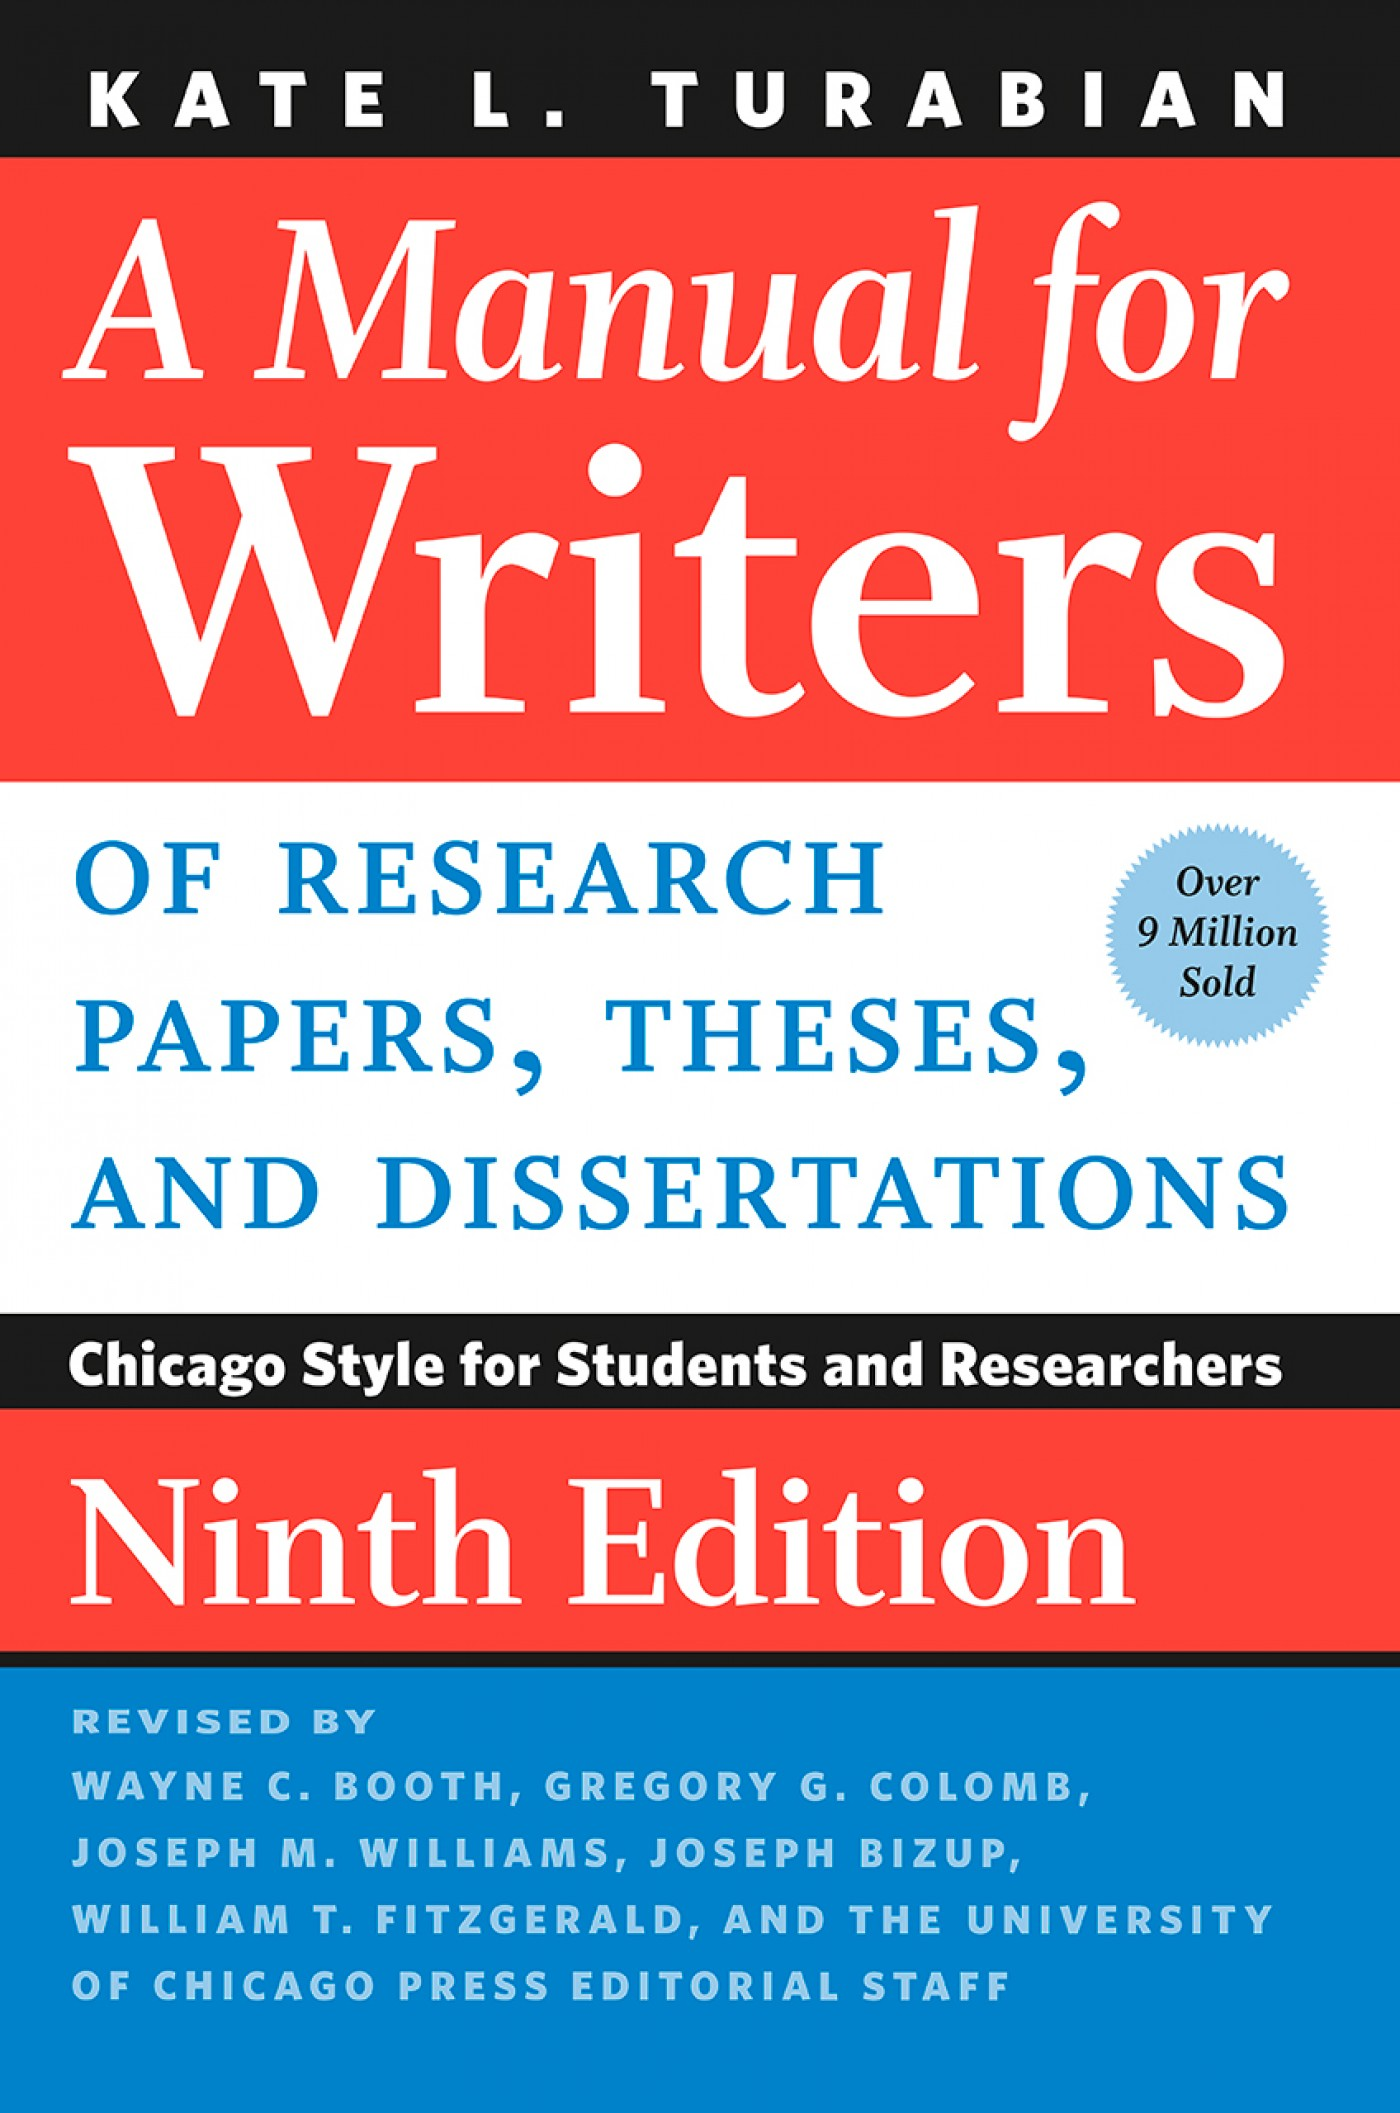 001 Manual For Writers Of Researchs Theses And Dissertations Sensational A Research Papers Ed. 8 8th Edition Ninth Pdf 1400